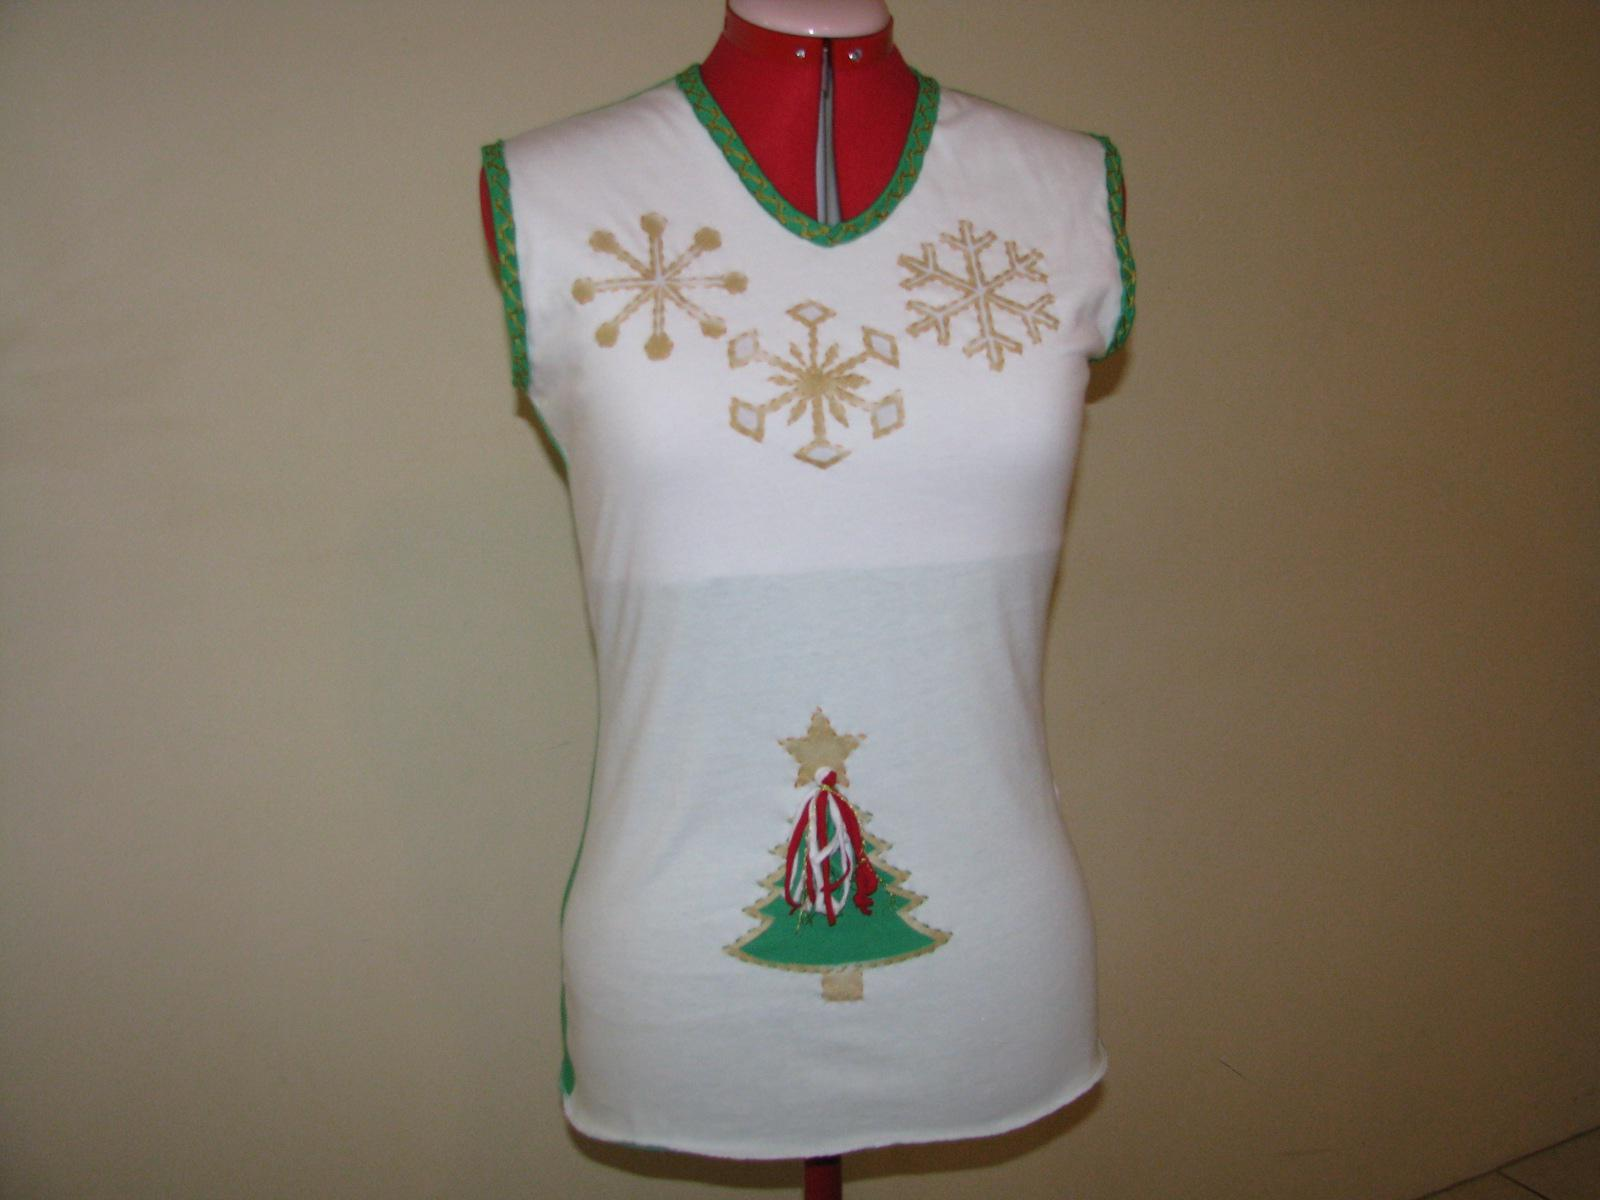 Hand embroidered Christmas t-shirt